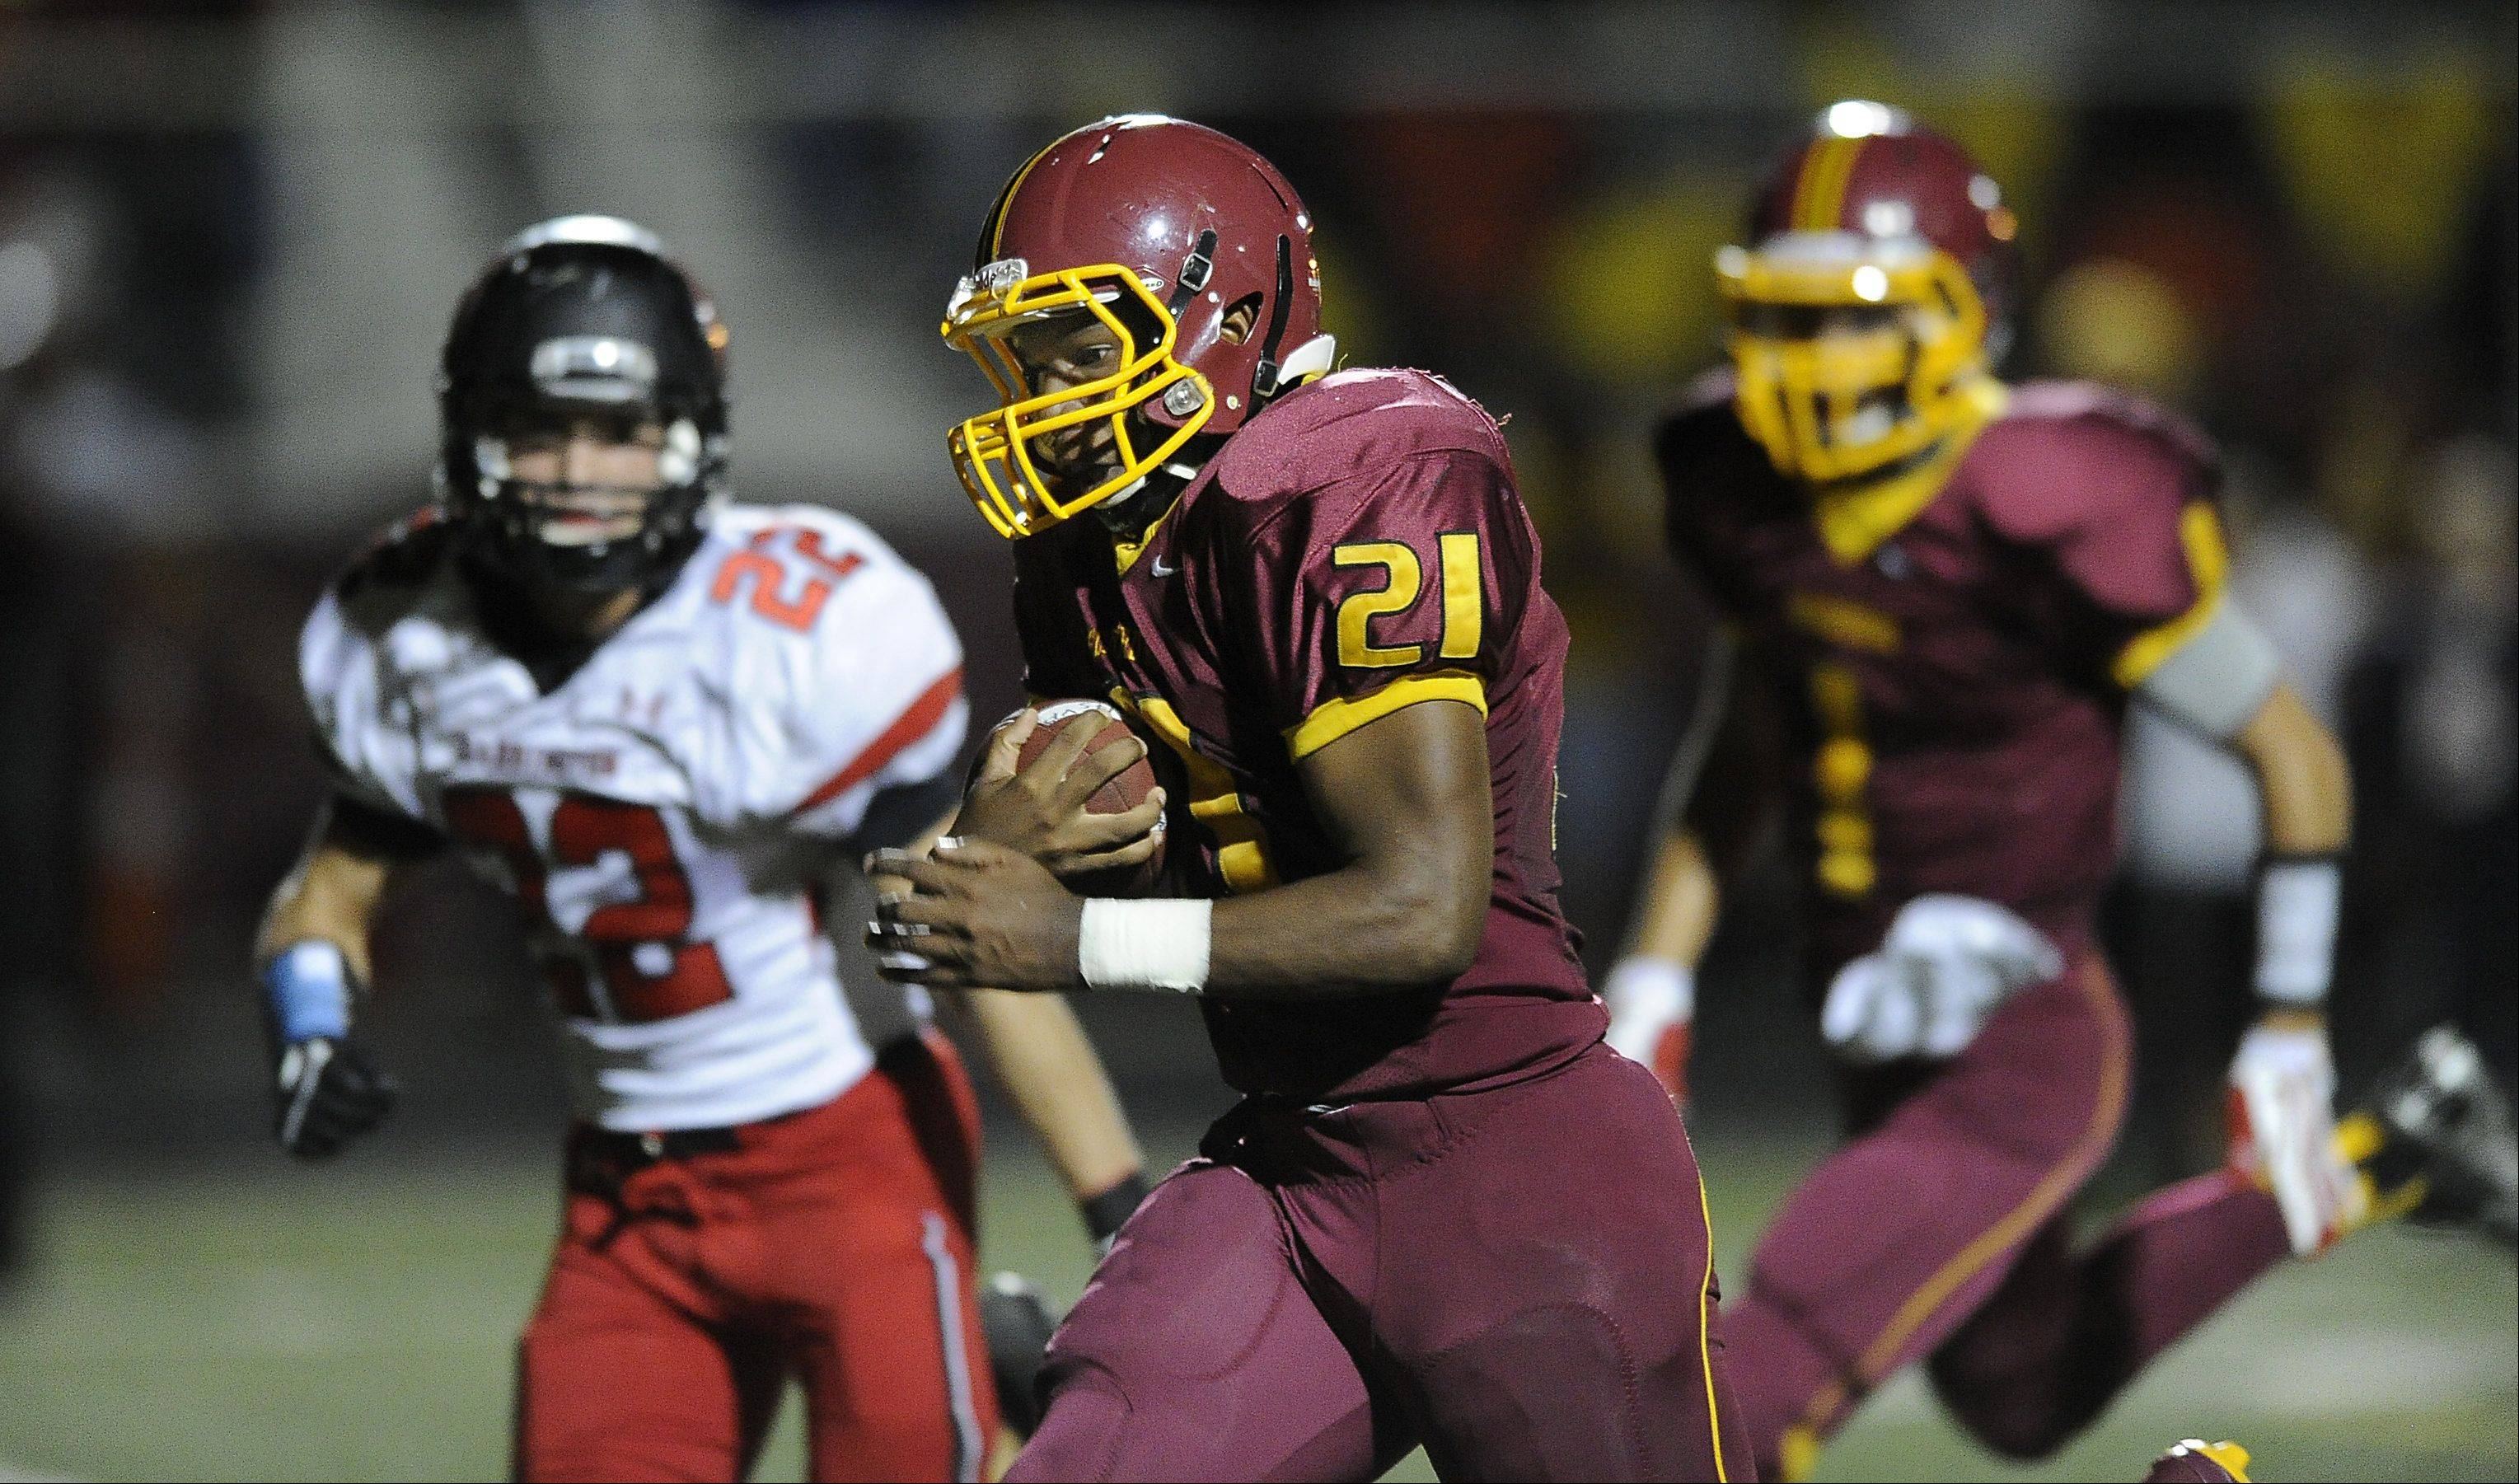 Schaumburg�s Justice Macneal-Young runs in his second touchdown of the game in the second quarter.